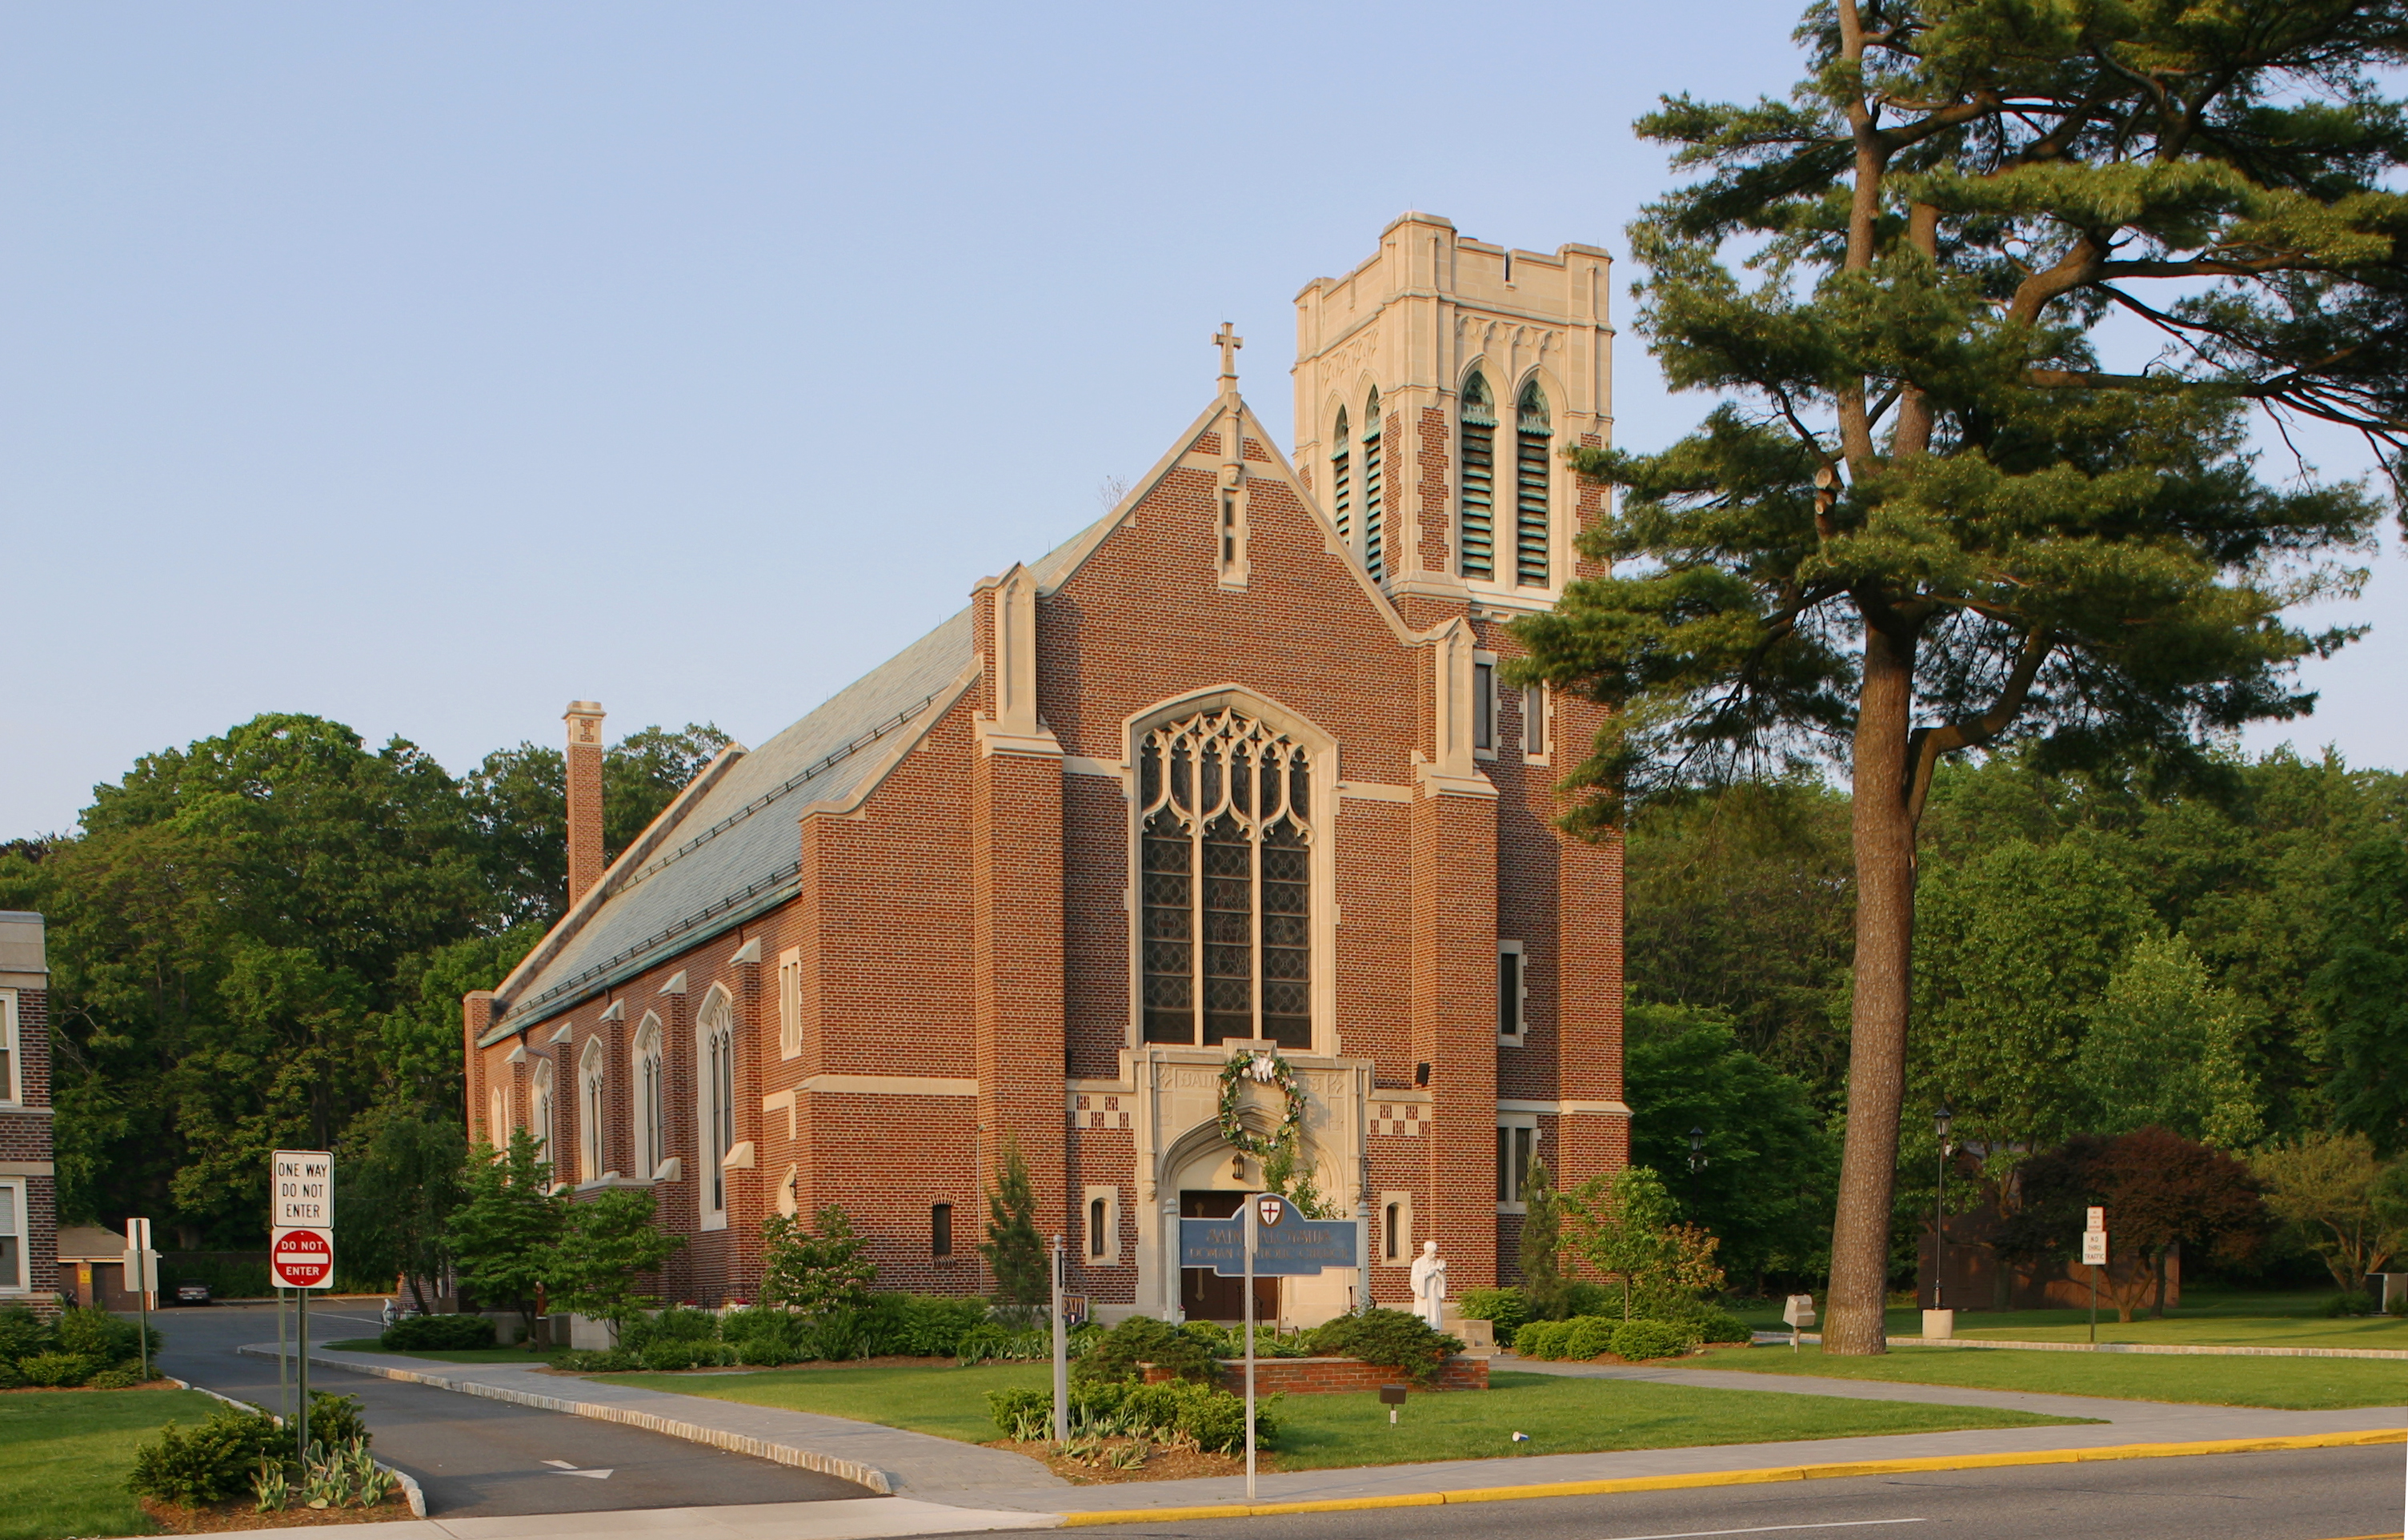 Caldwell  Saint Aloysius  Churches of the Archdiocese of